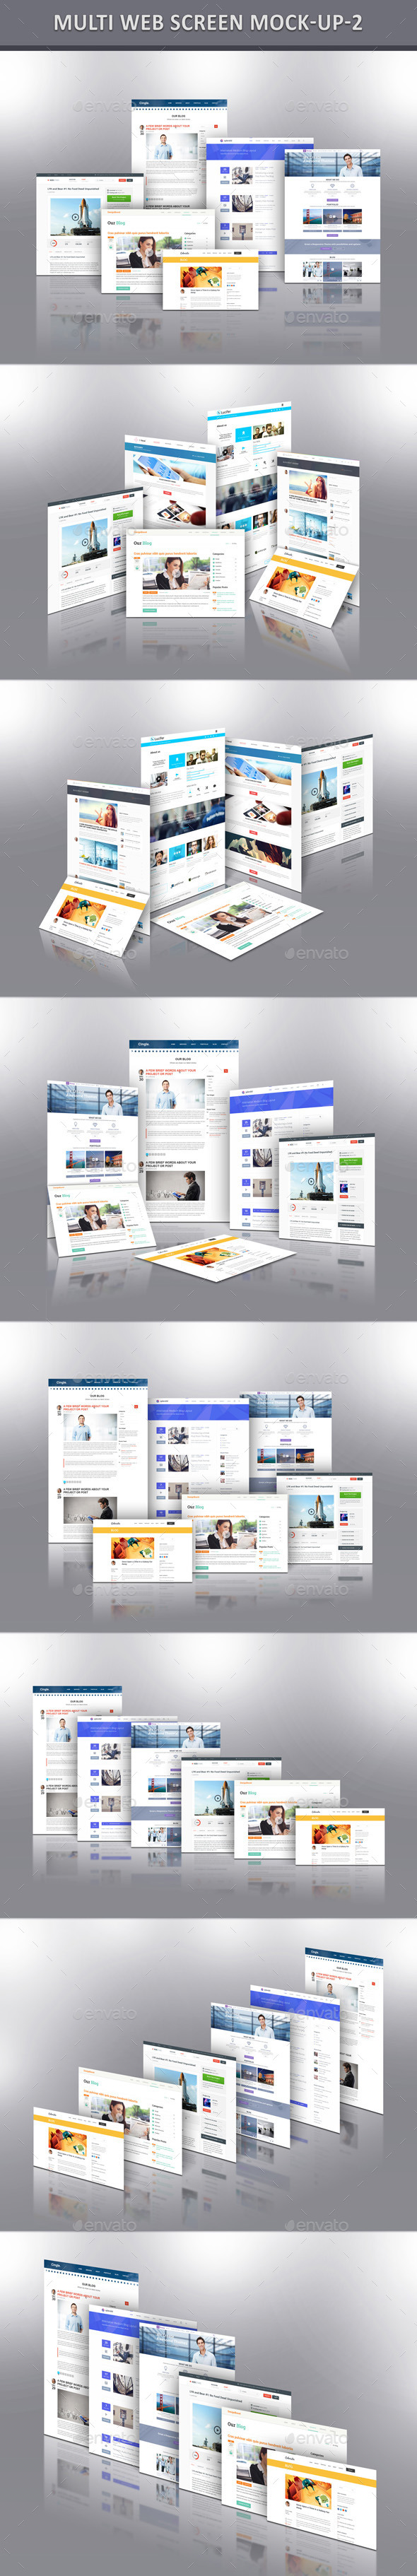 GraphicRiver Multi Web Screen Mock-Up 2 11456106